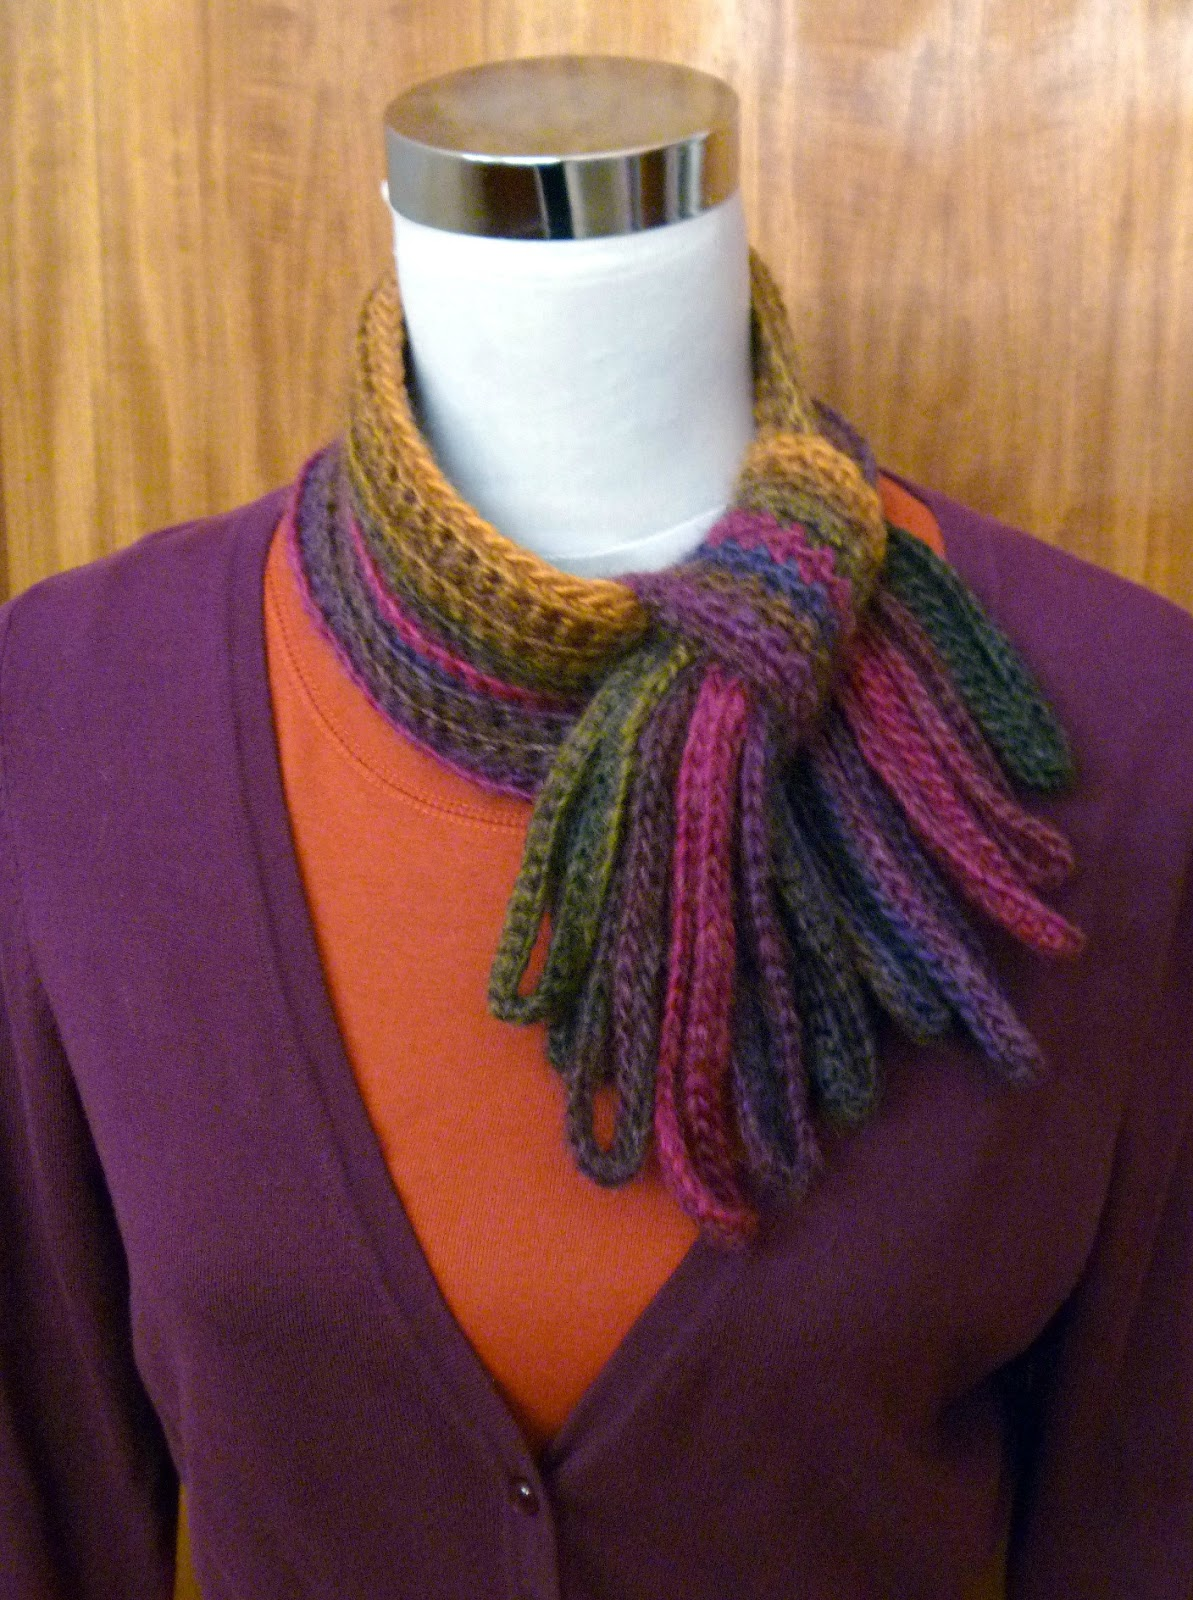 Crochet Scarf Pattern Variegated Yarn : Stitch Story: The Modern Jabot Chunky, an Adventure with ...